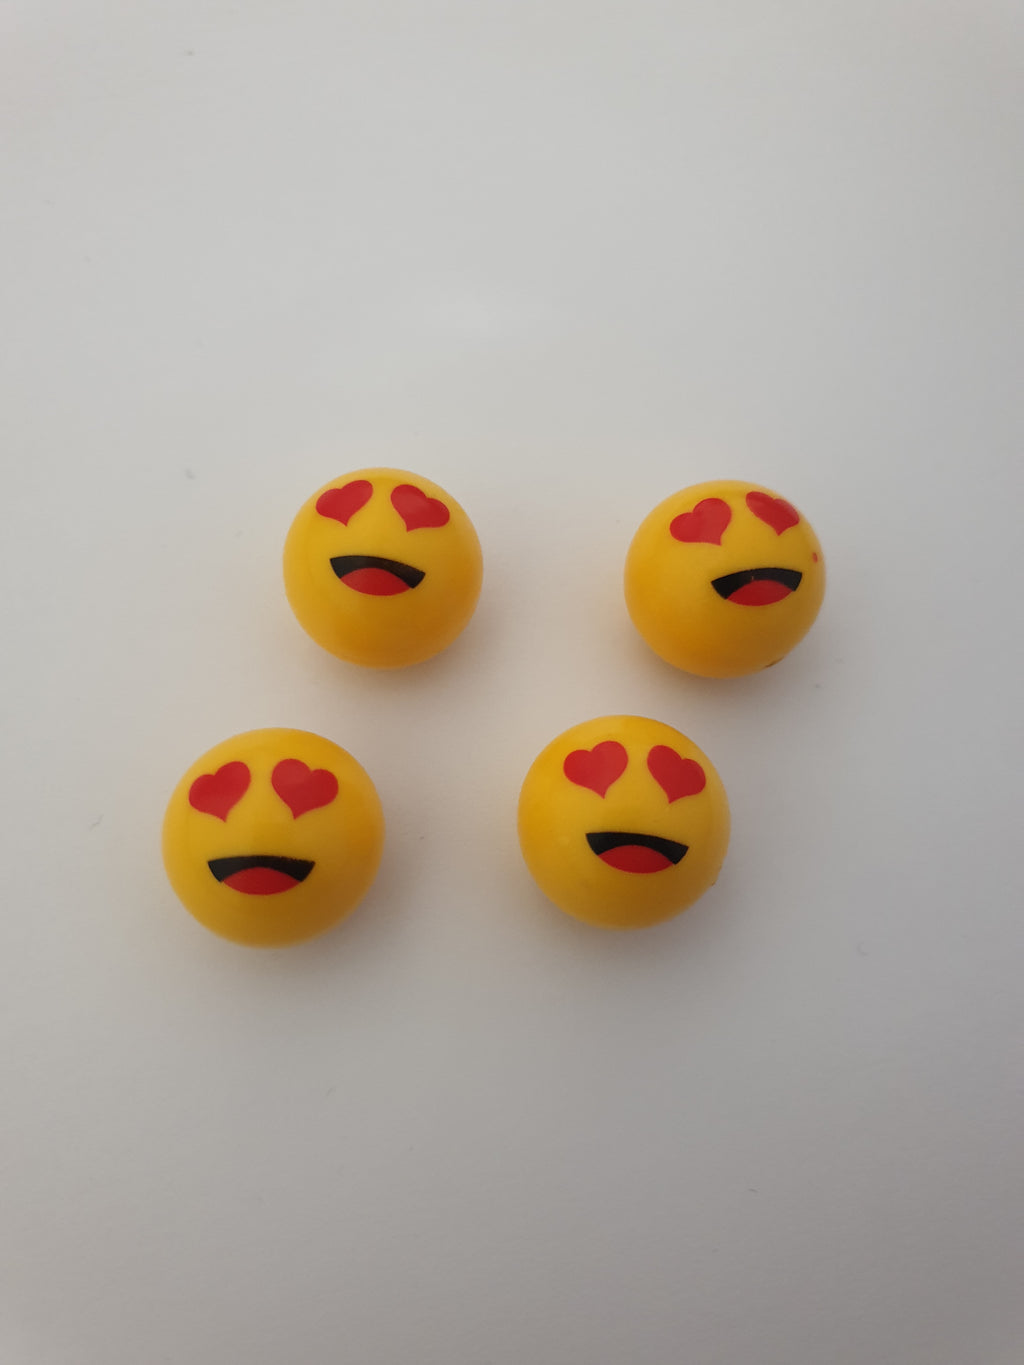 Love Emoji Valve Stem